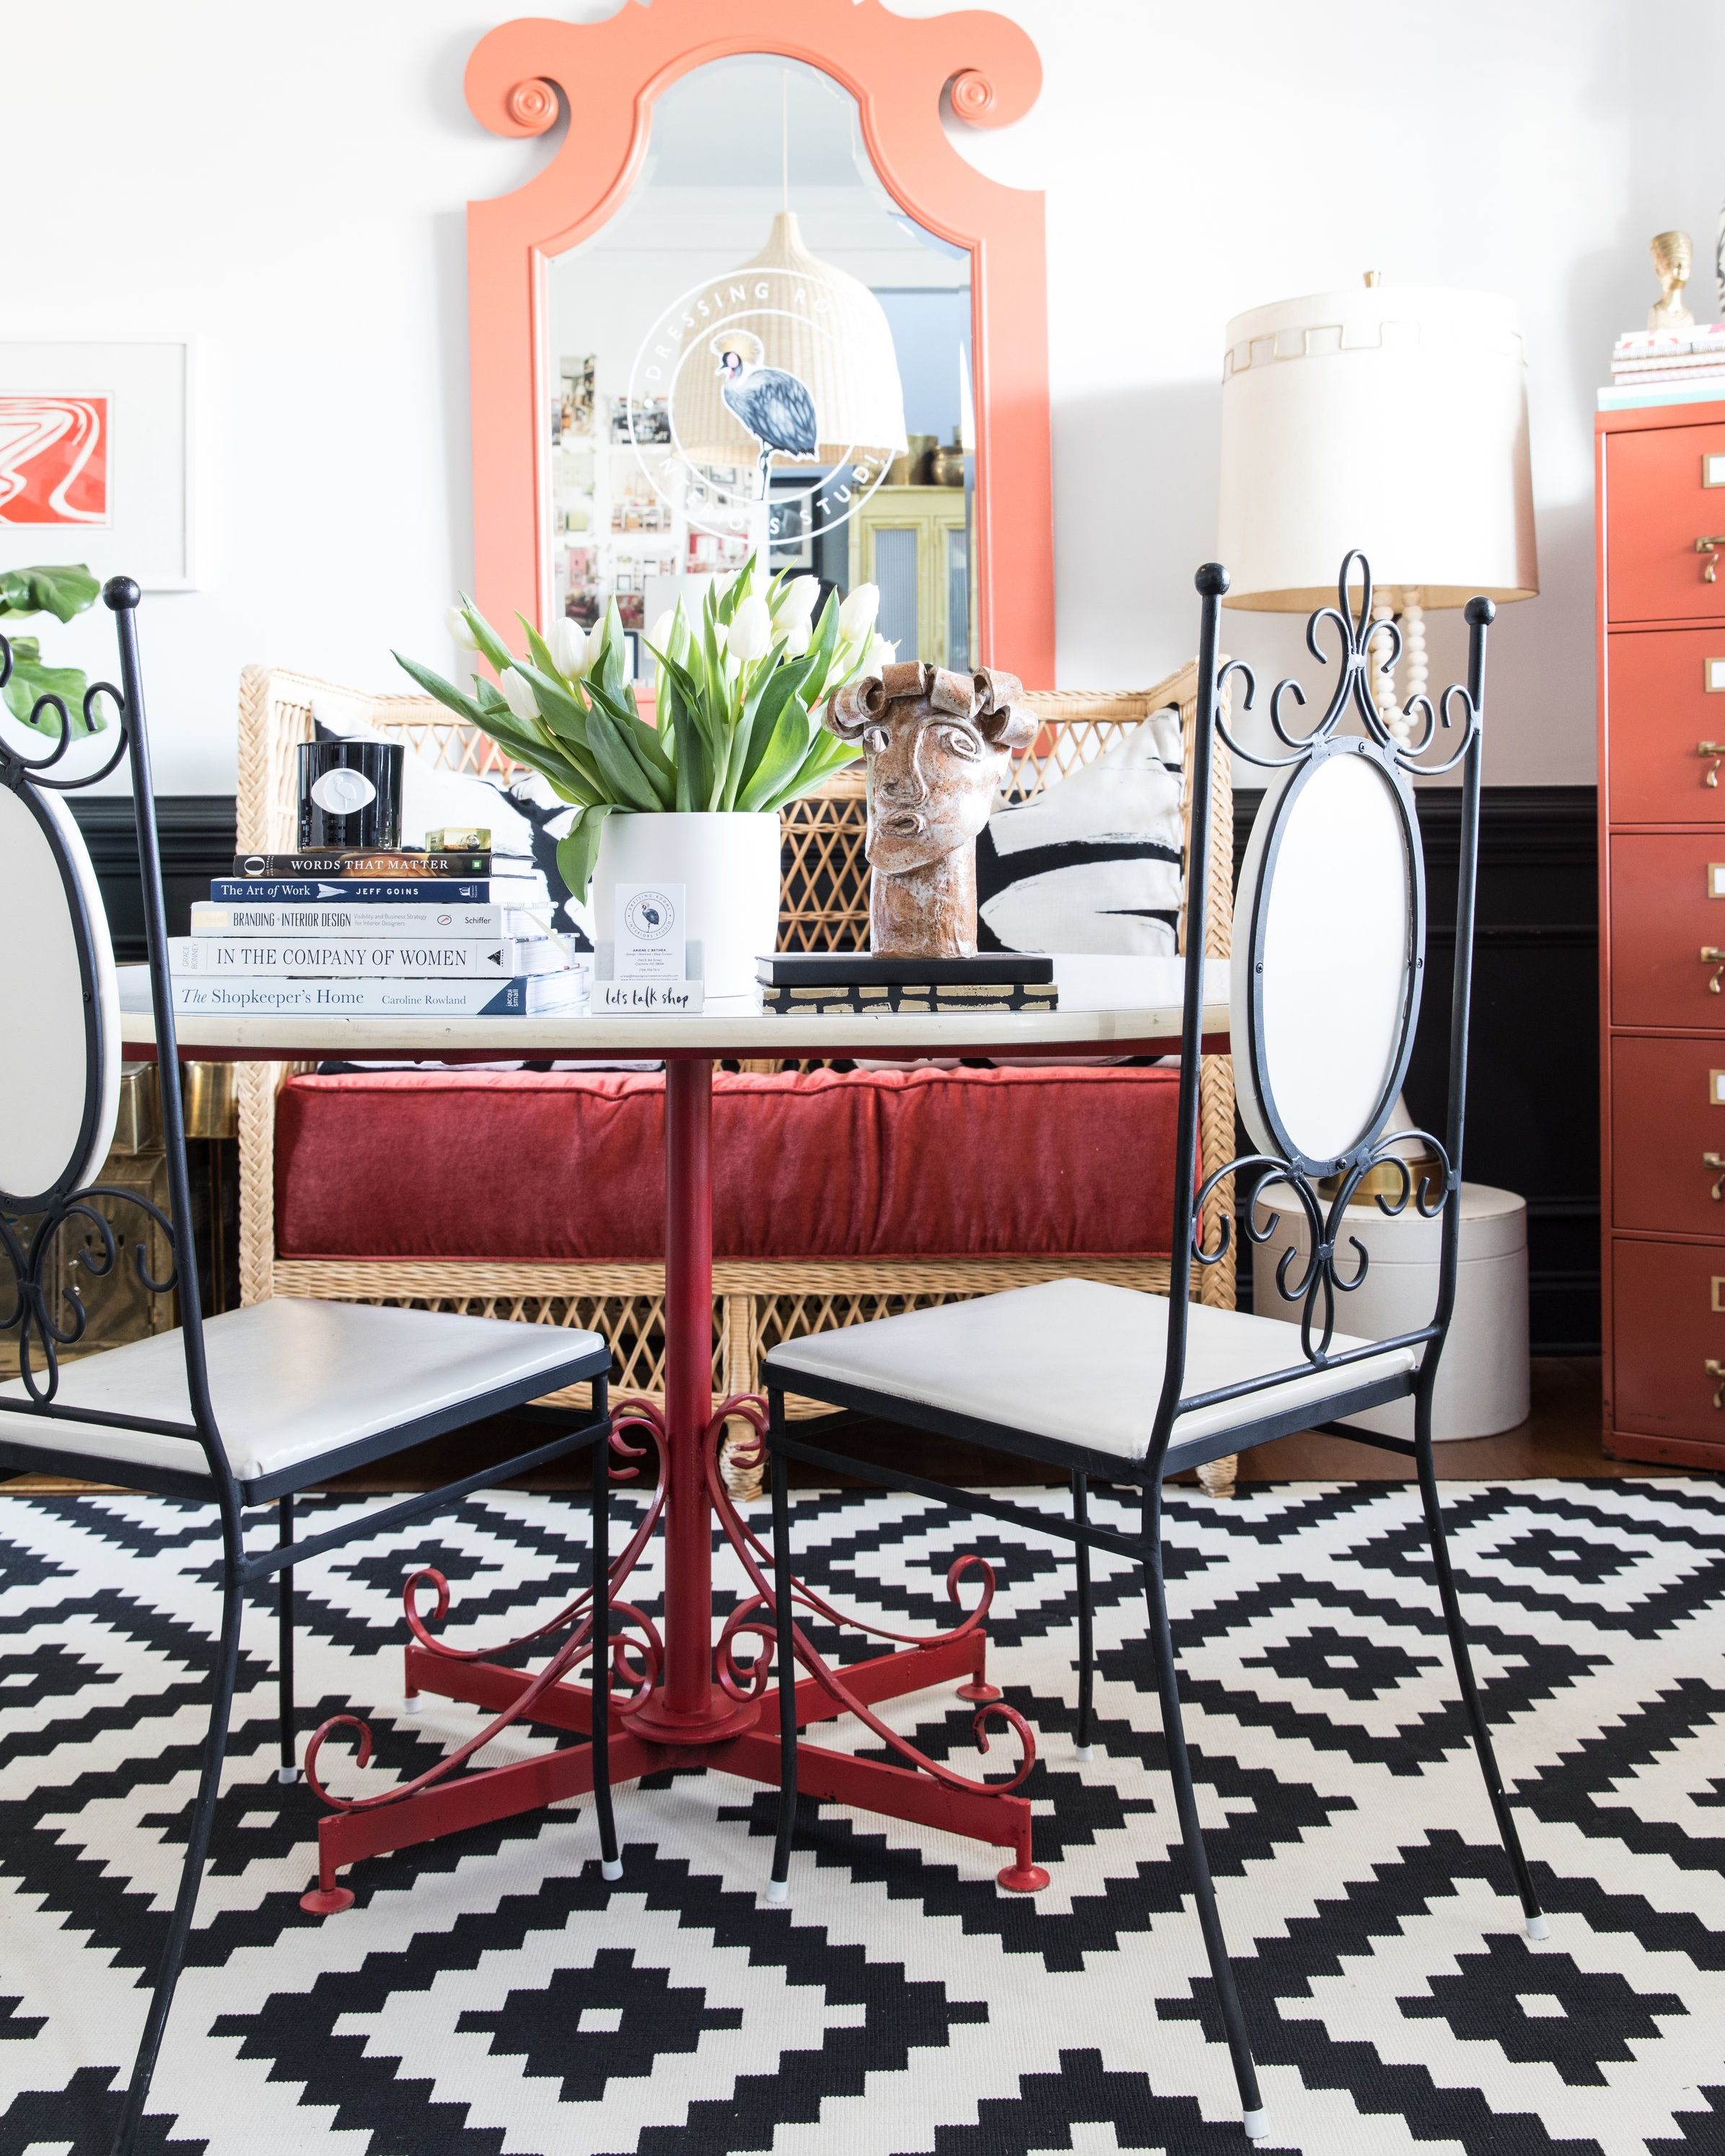 Before & After: Updating Inherited Pieces - Pieces with history are always more special, and with a little research you can update family heirlooms and mix them into new and modern interiors.